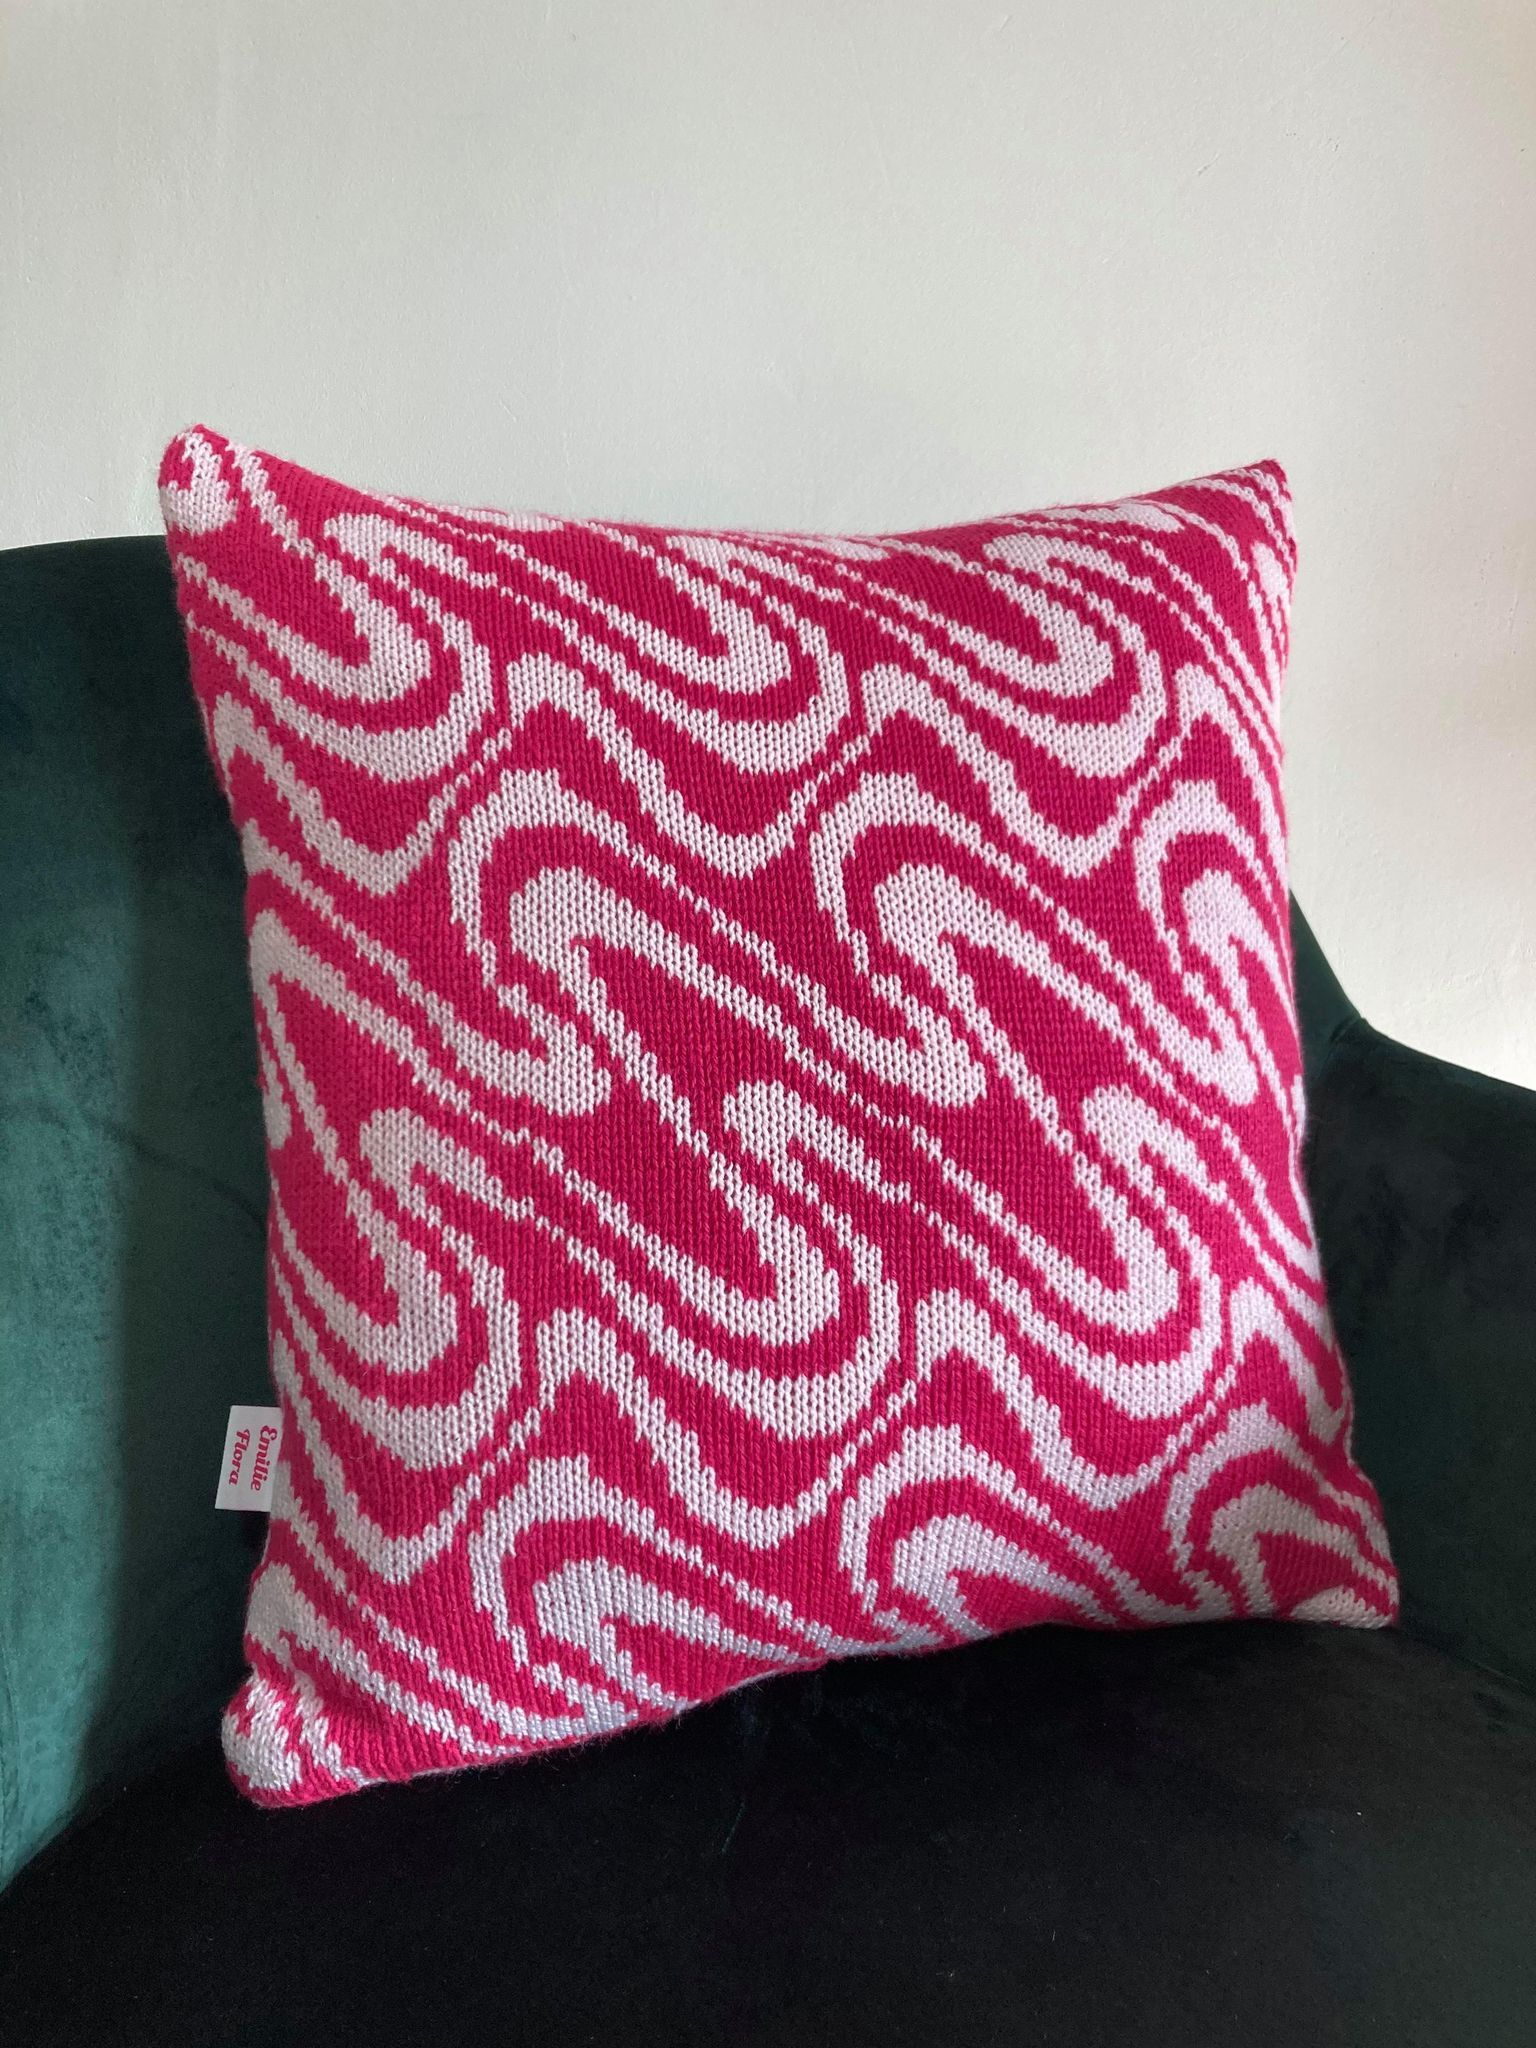 Swirly Cushion - Hot Pink and Pale Pink